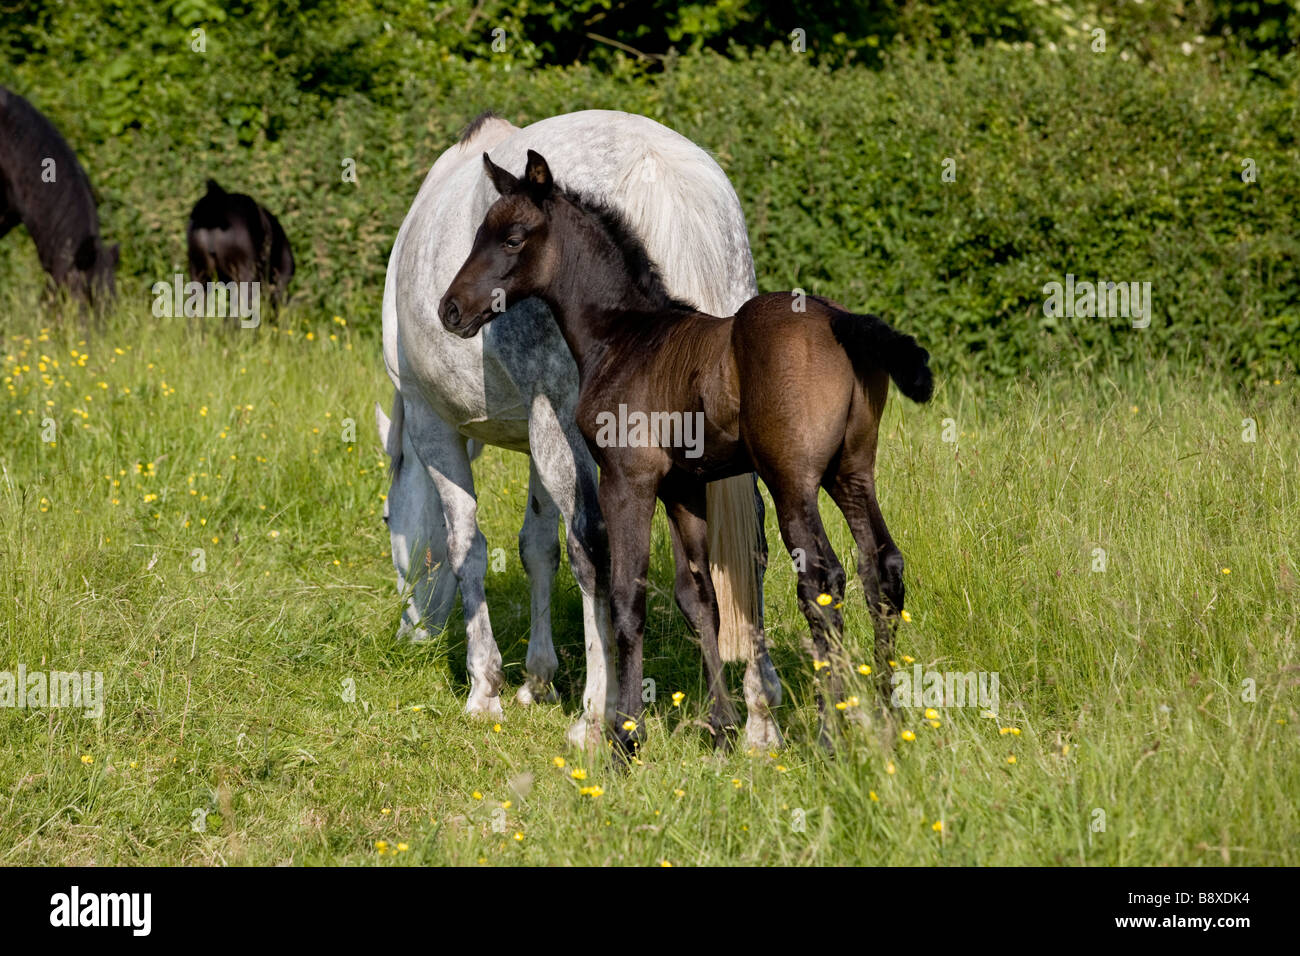 HORSE WITH FOAL IN FIELD ENGLAND - Stock Image